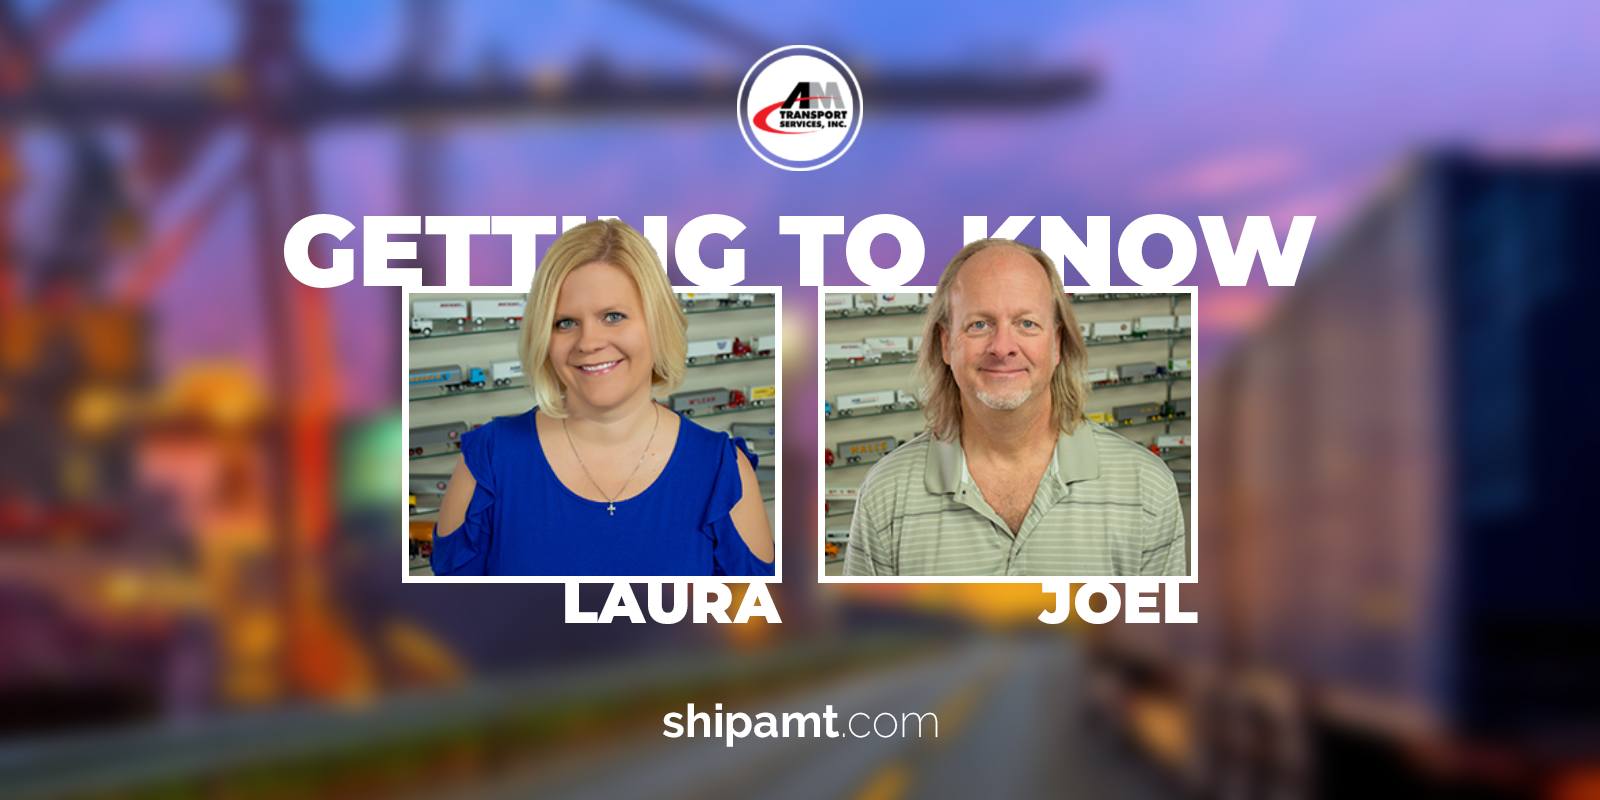 Getting to Know Laura and Joel